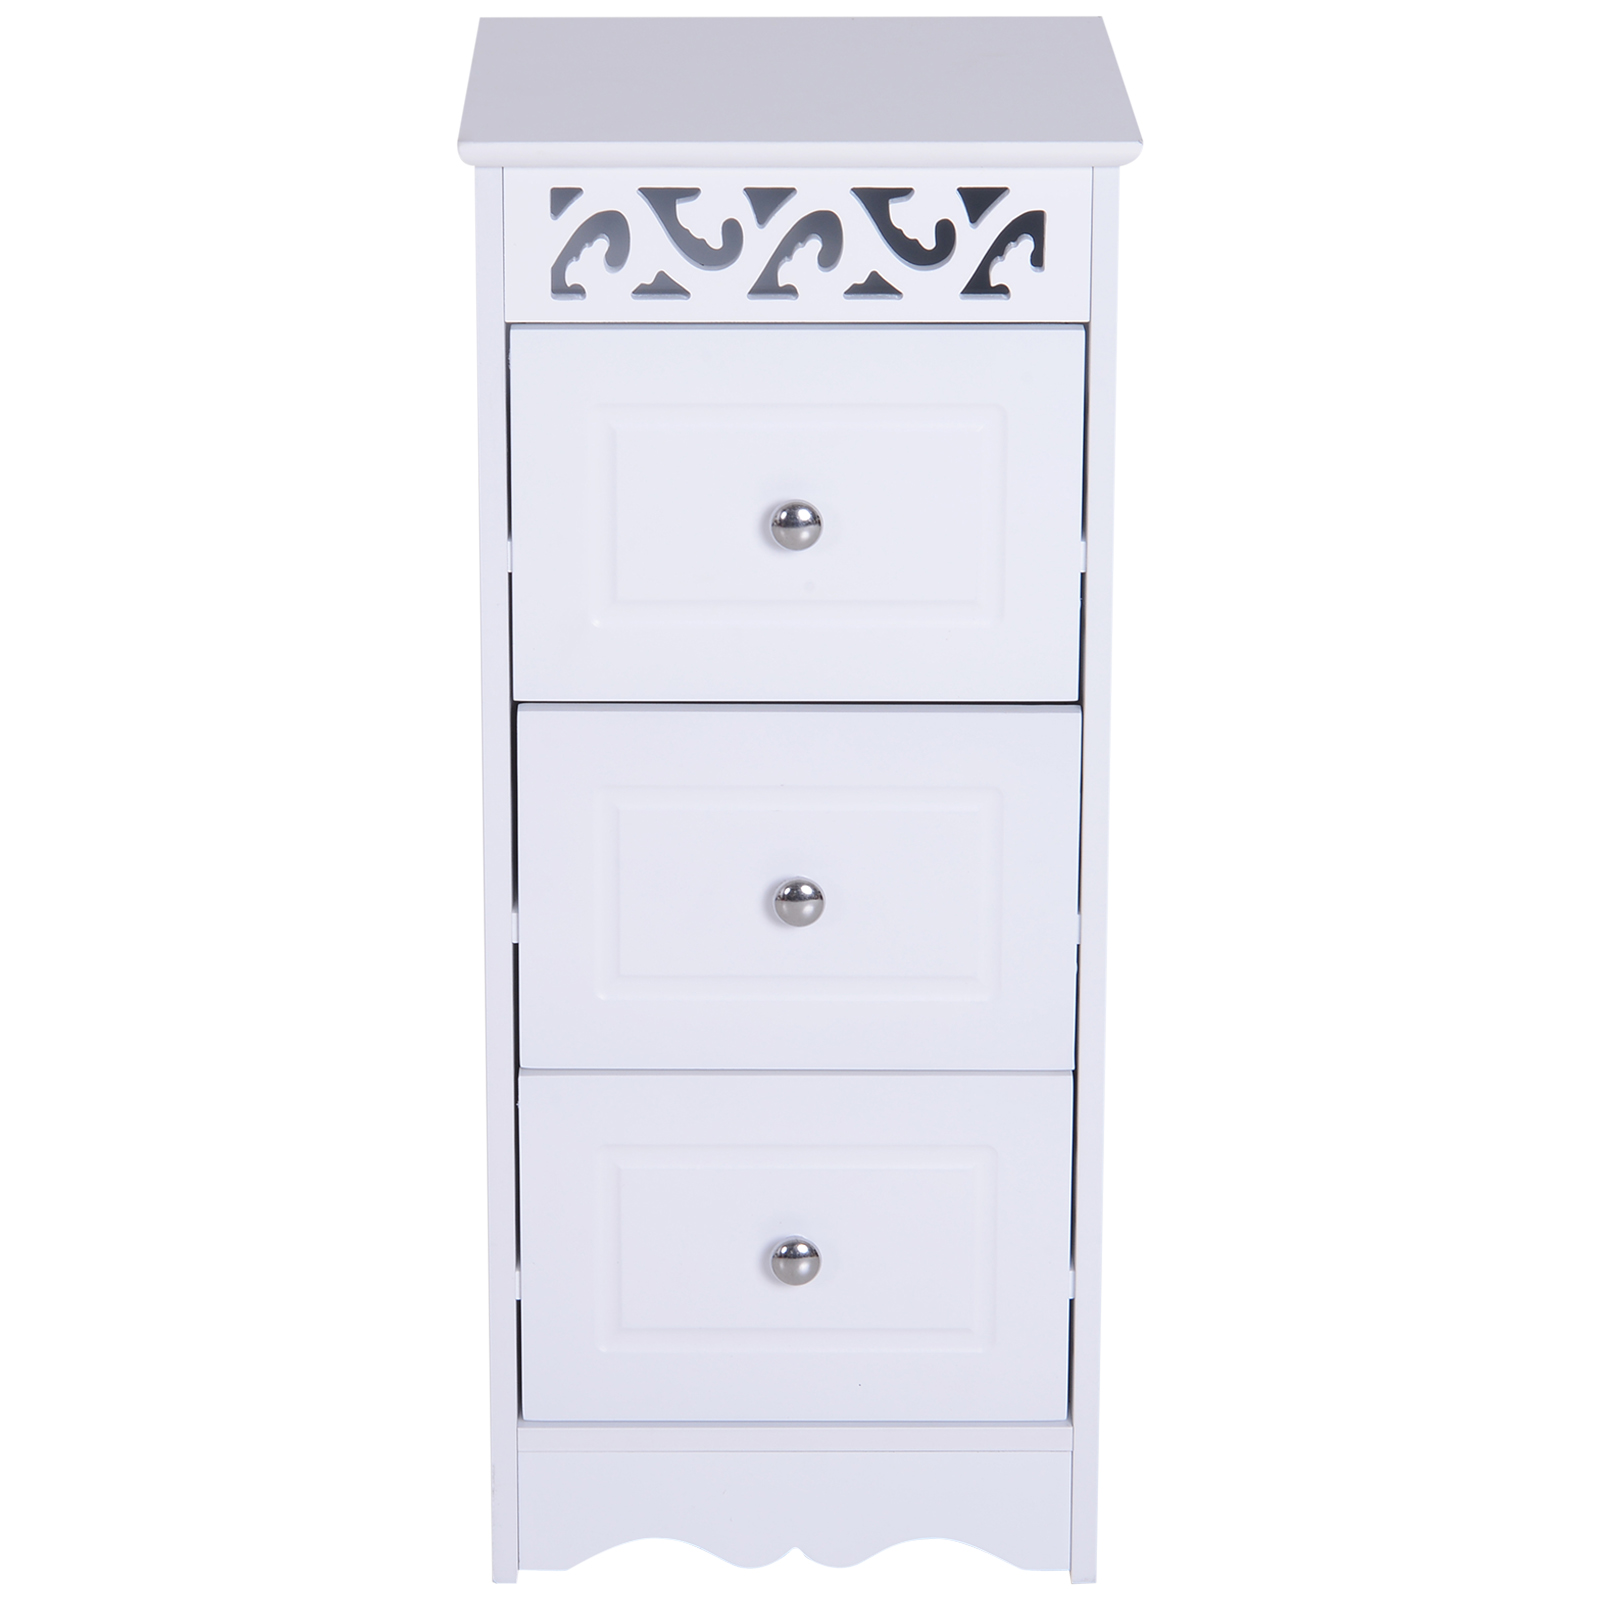 Bathroom-Cabinet-Corner-Shelf-Unit-Drawers-Tower-Cupboard-Wood-Storage-White thumbnail 7